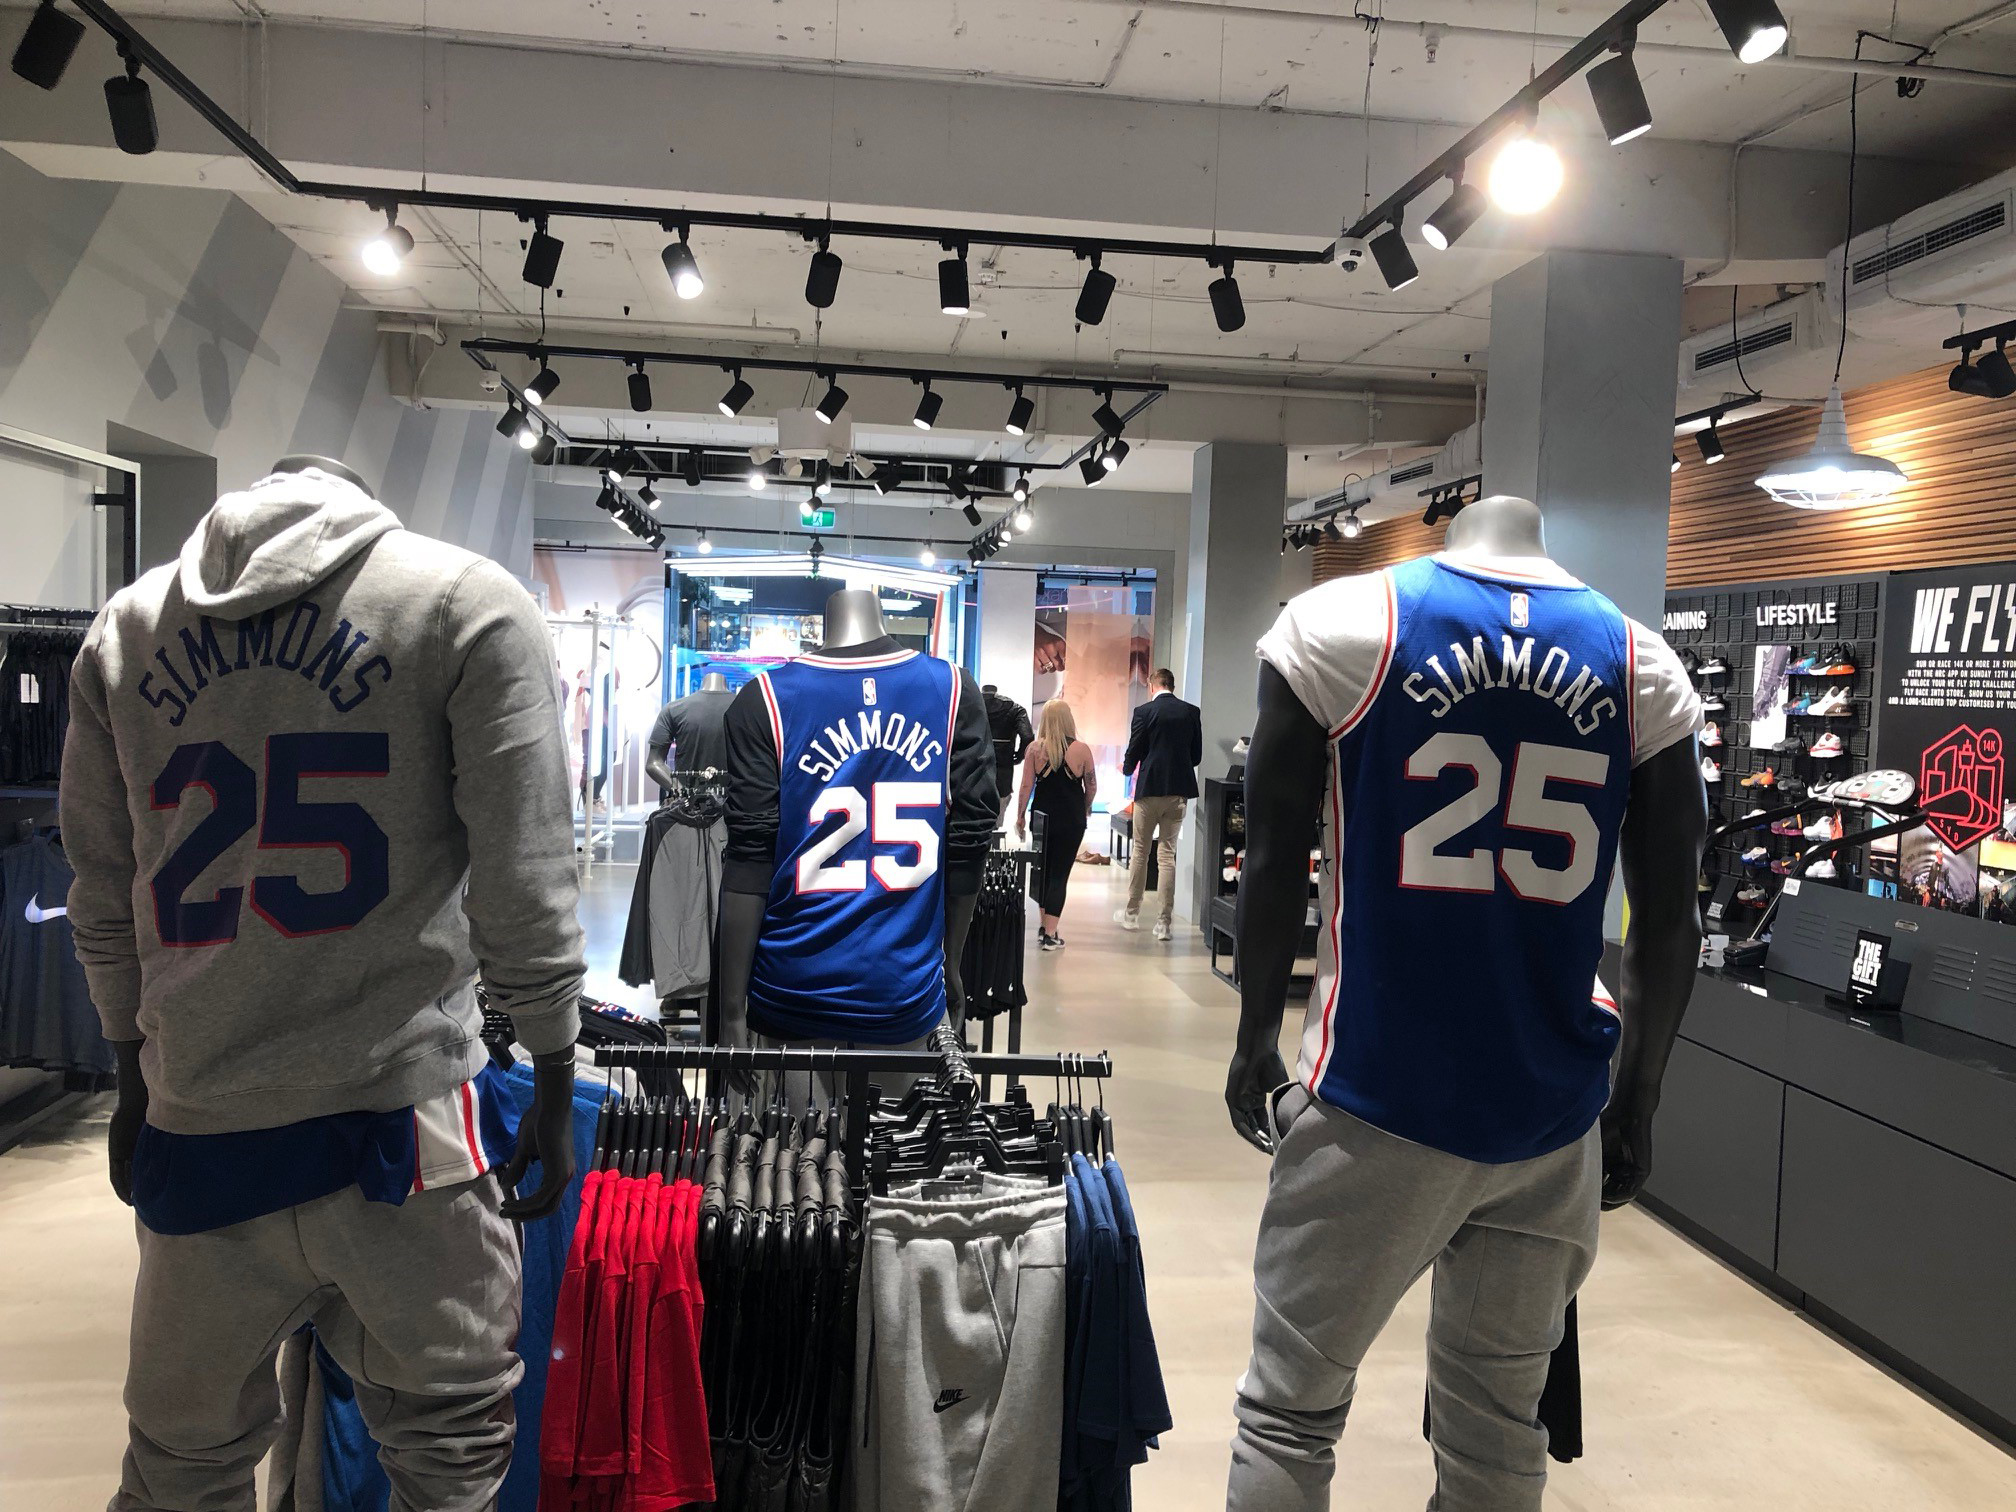 Native Australian Ben Simmons has his Sixers gear prominently displayed at a Nike store in Sydney.